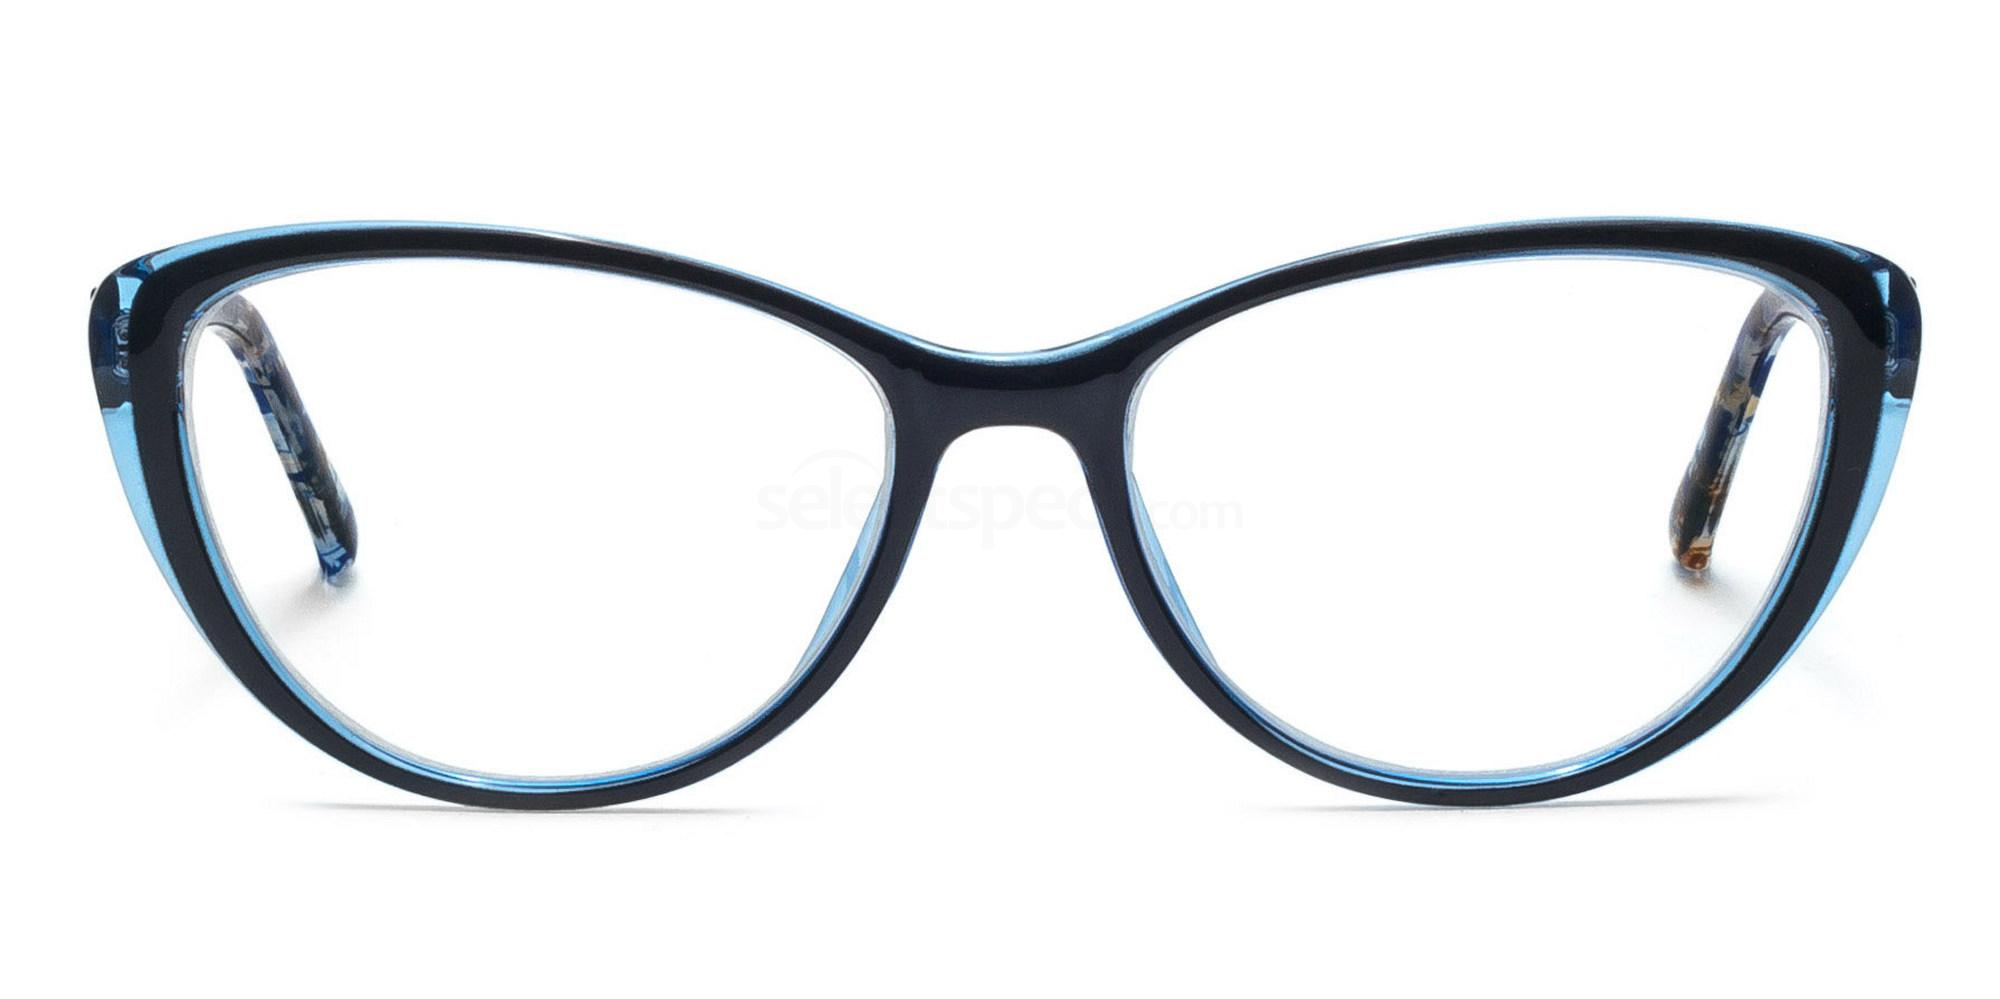 C48 2489 - Black on Blue Glasses, Savannah